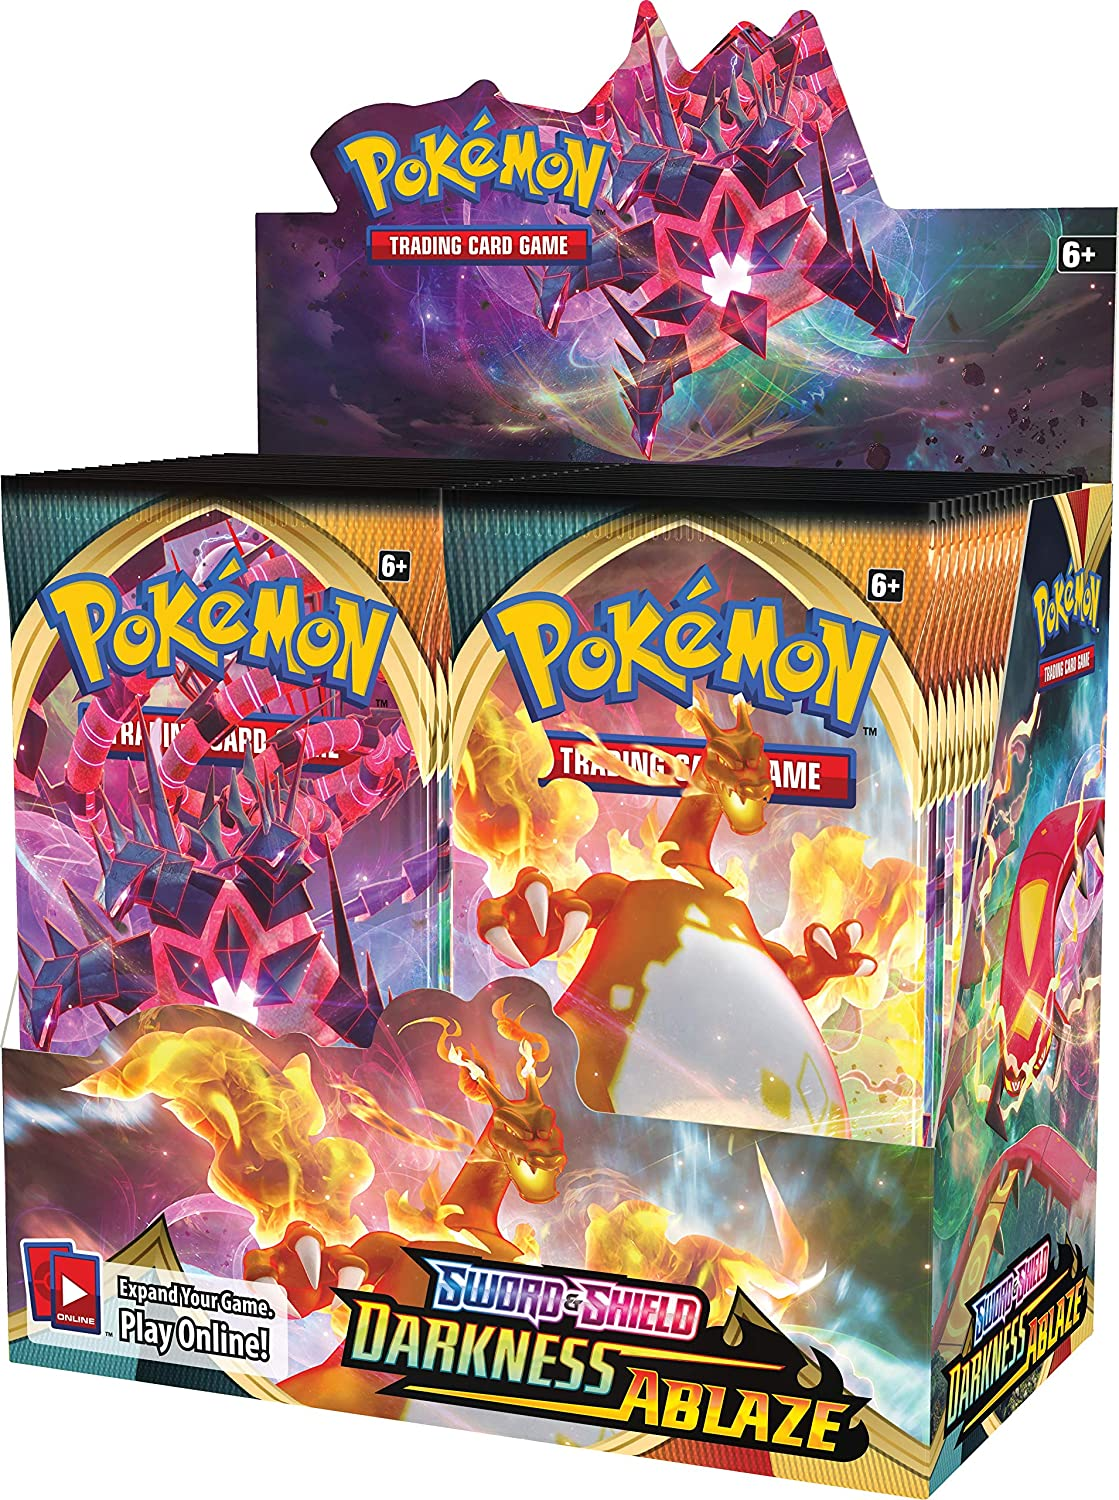 Pokemon Sword & Shield - Darkness Ablaze Booster Box